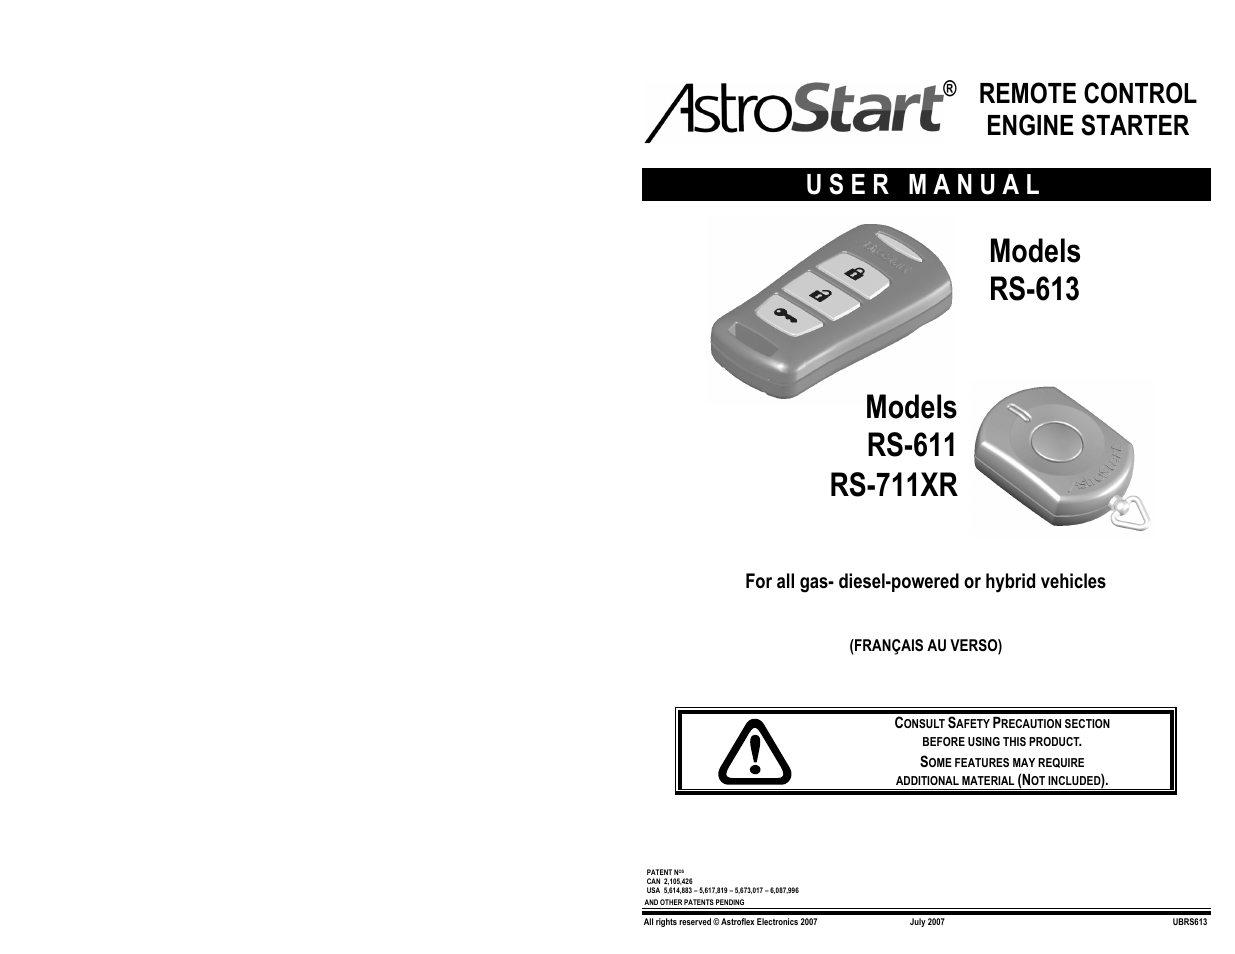 astrostart rs 611 page1 astrostart rs 611 user manual 12 pages also for rs 711xr, rs 613 wiring diagram for astrostart rs 613 at gsmportal.co